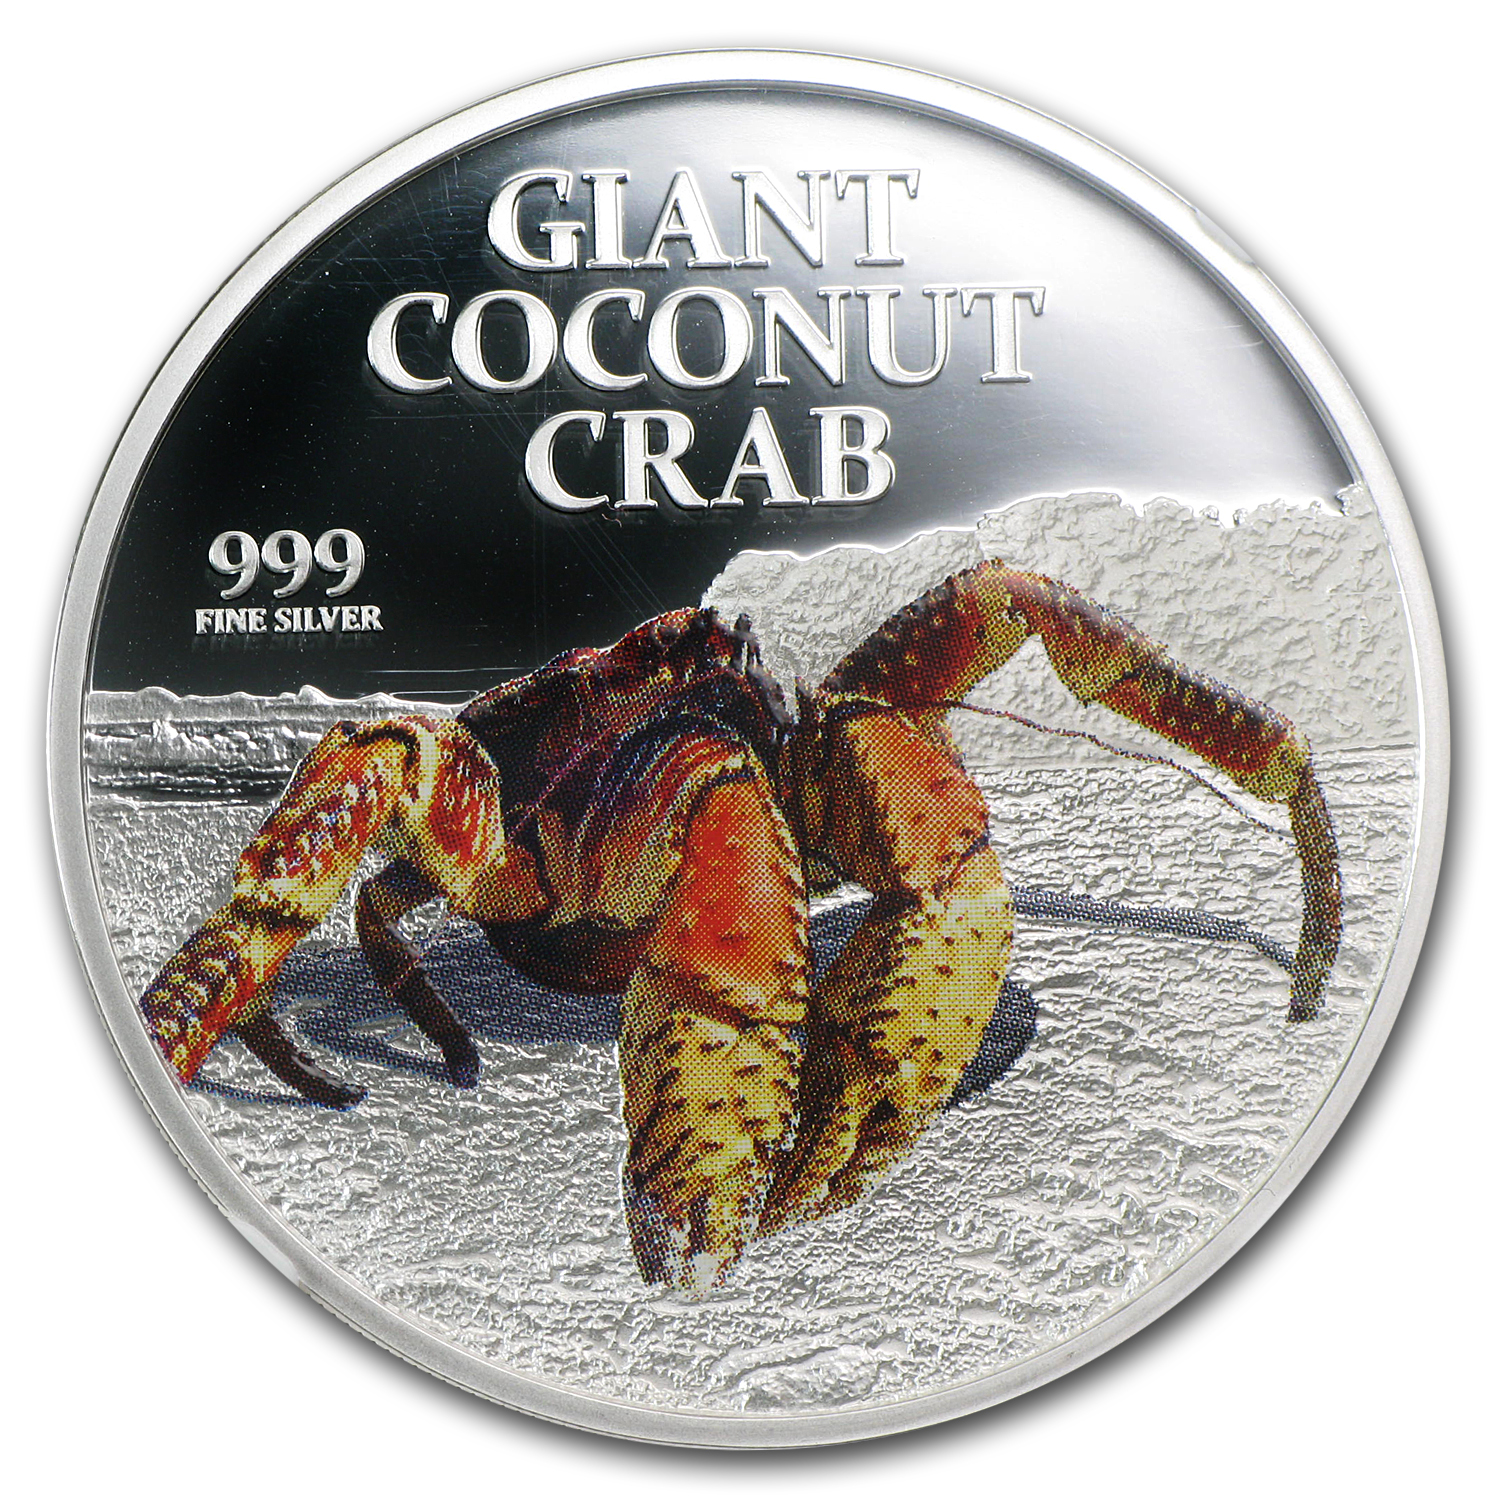 2013 Niue 1 oz Silver $2 Giant Coconut Crab PF-70 NGC